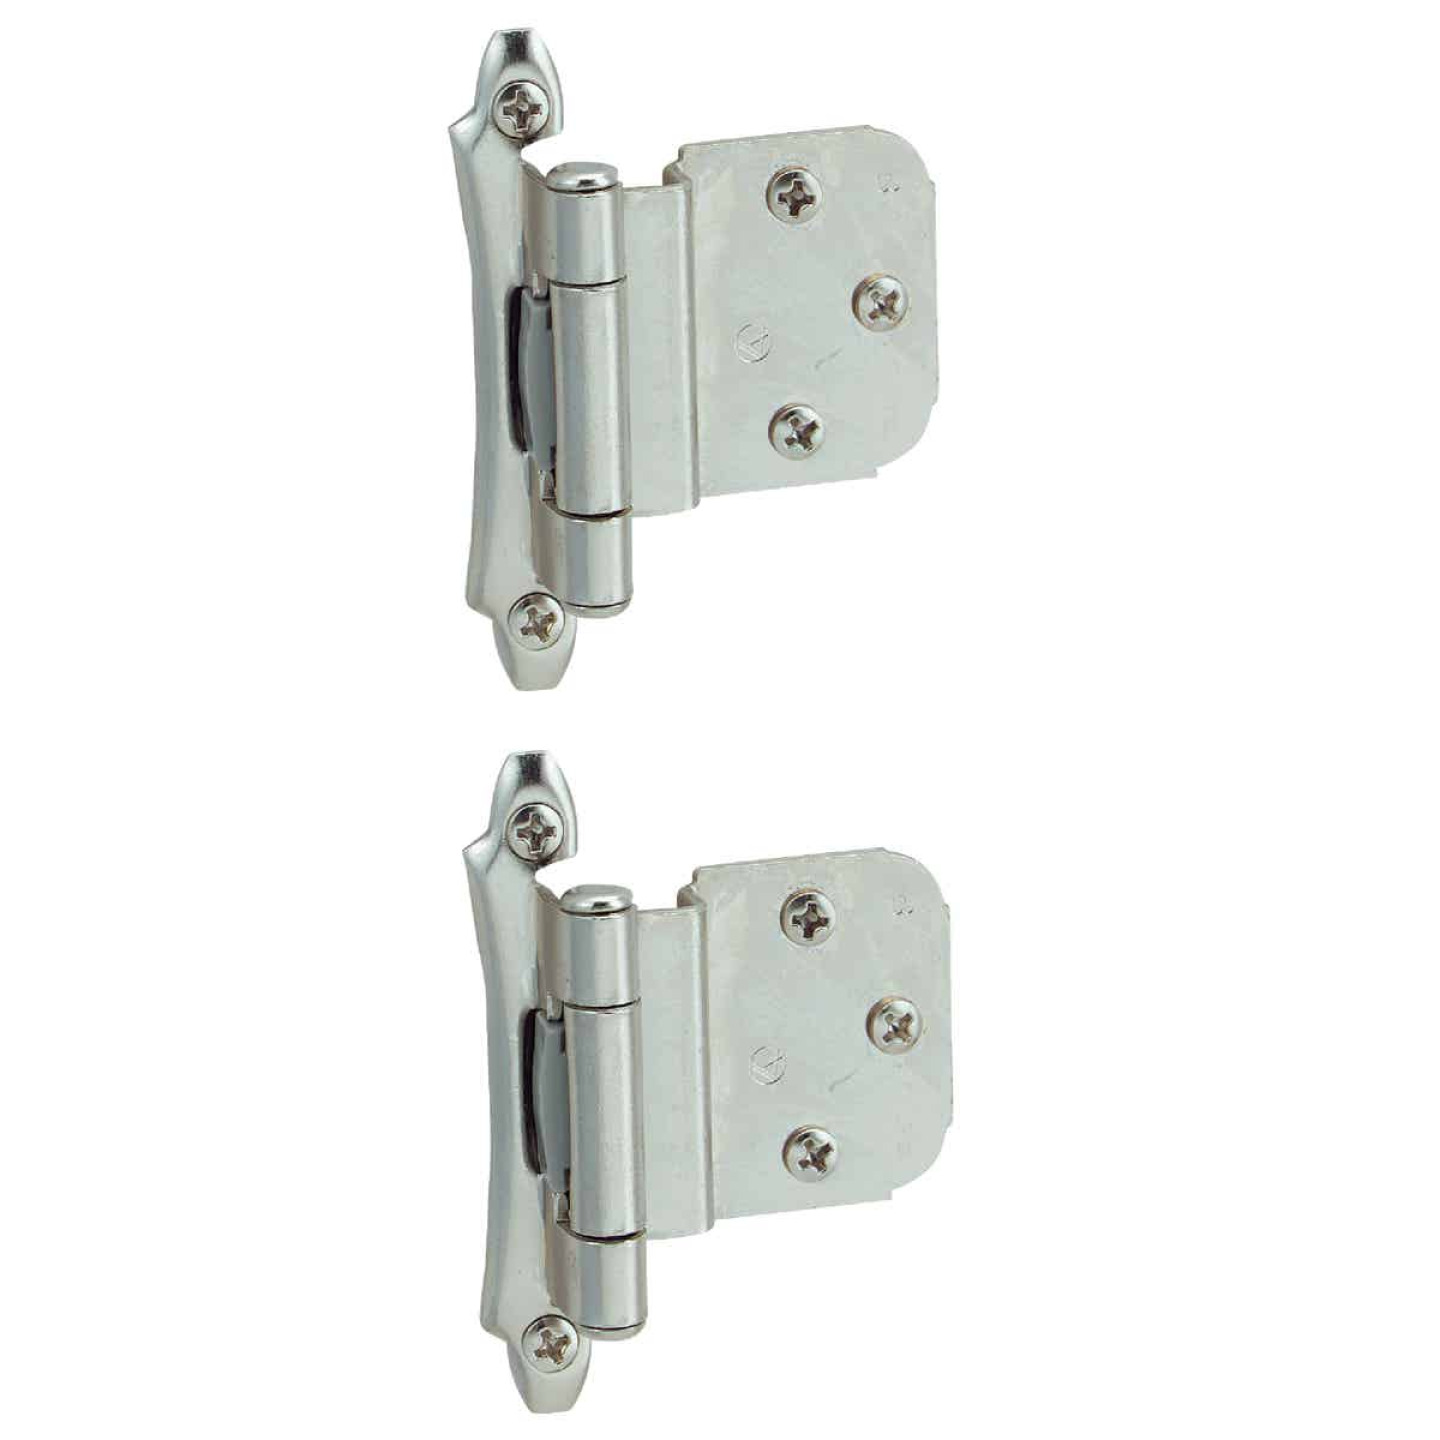 Amerock Polished Chromium 3/8 In. Self-Closing Inset Hinge, (2-Pack) Image 1